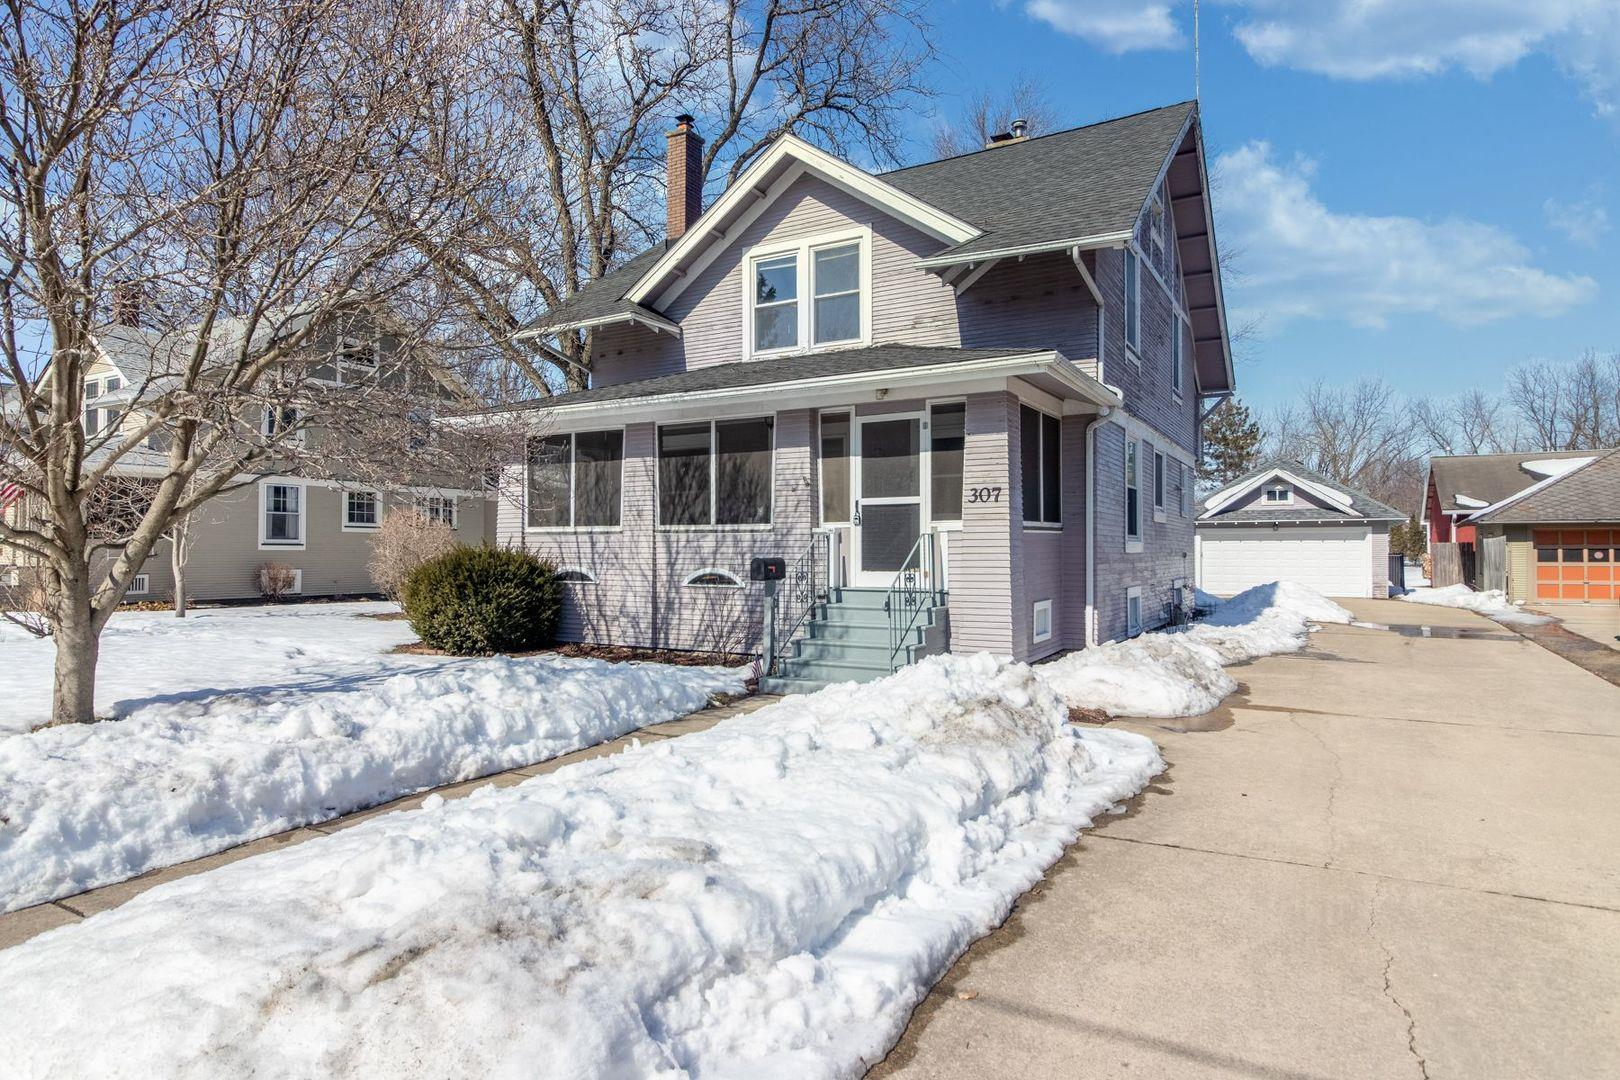 307 E 6th Street, Sandwich, IL 60548 - #: 11006251